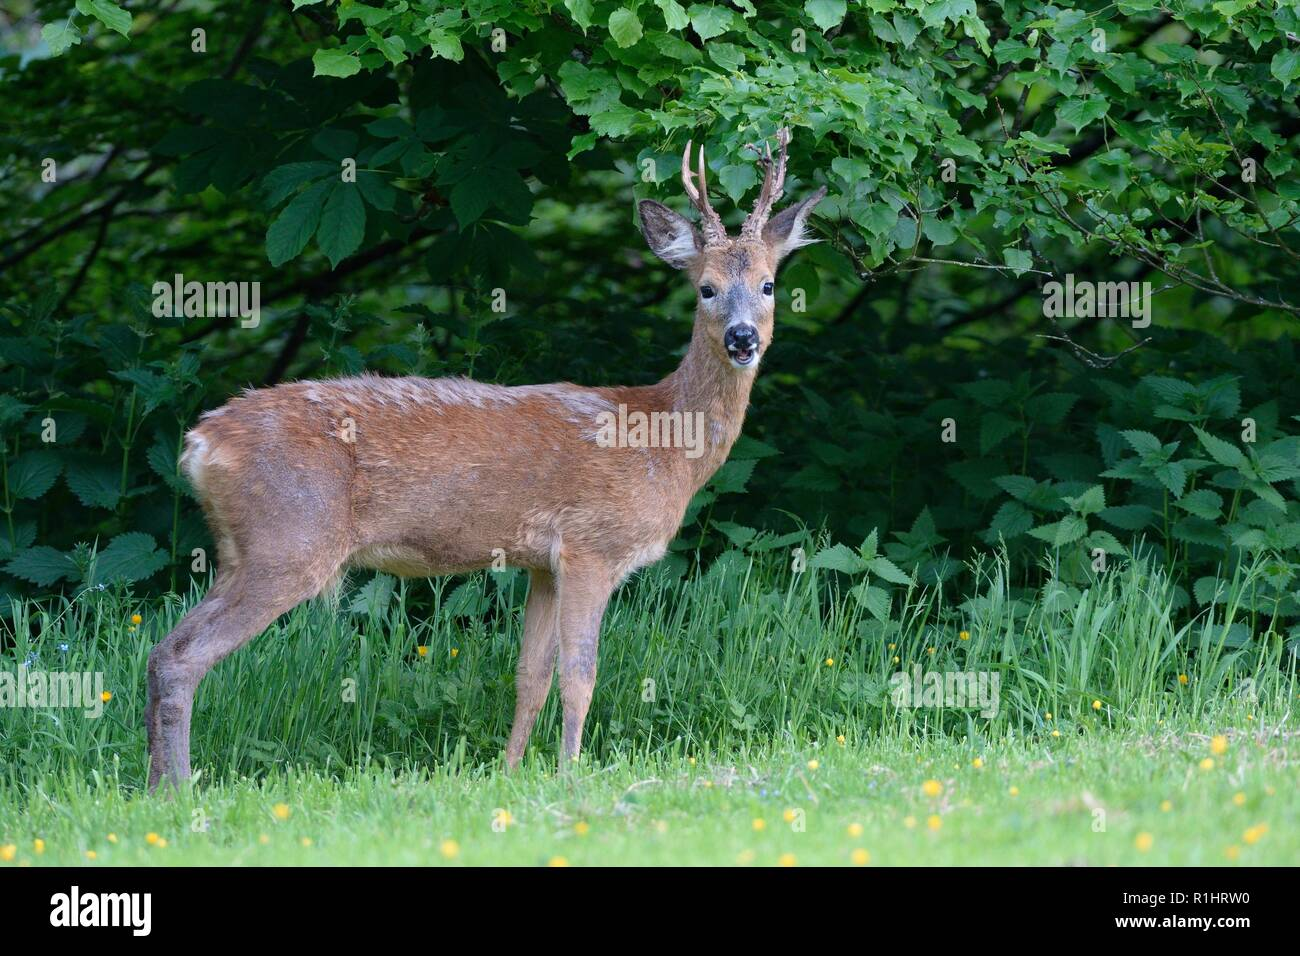 Roe deer (Capreolus capreolus) buck looking up after grazing a grassy woodland clearing at dusk, near Bath, UK, May. - Stock Image